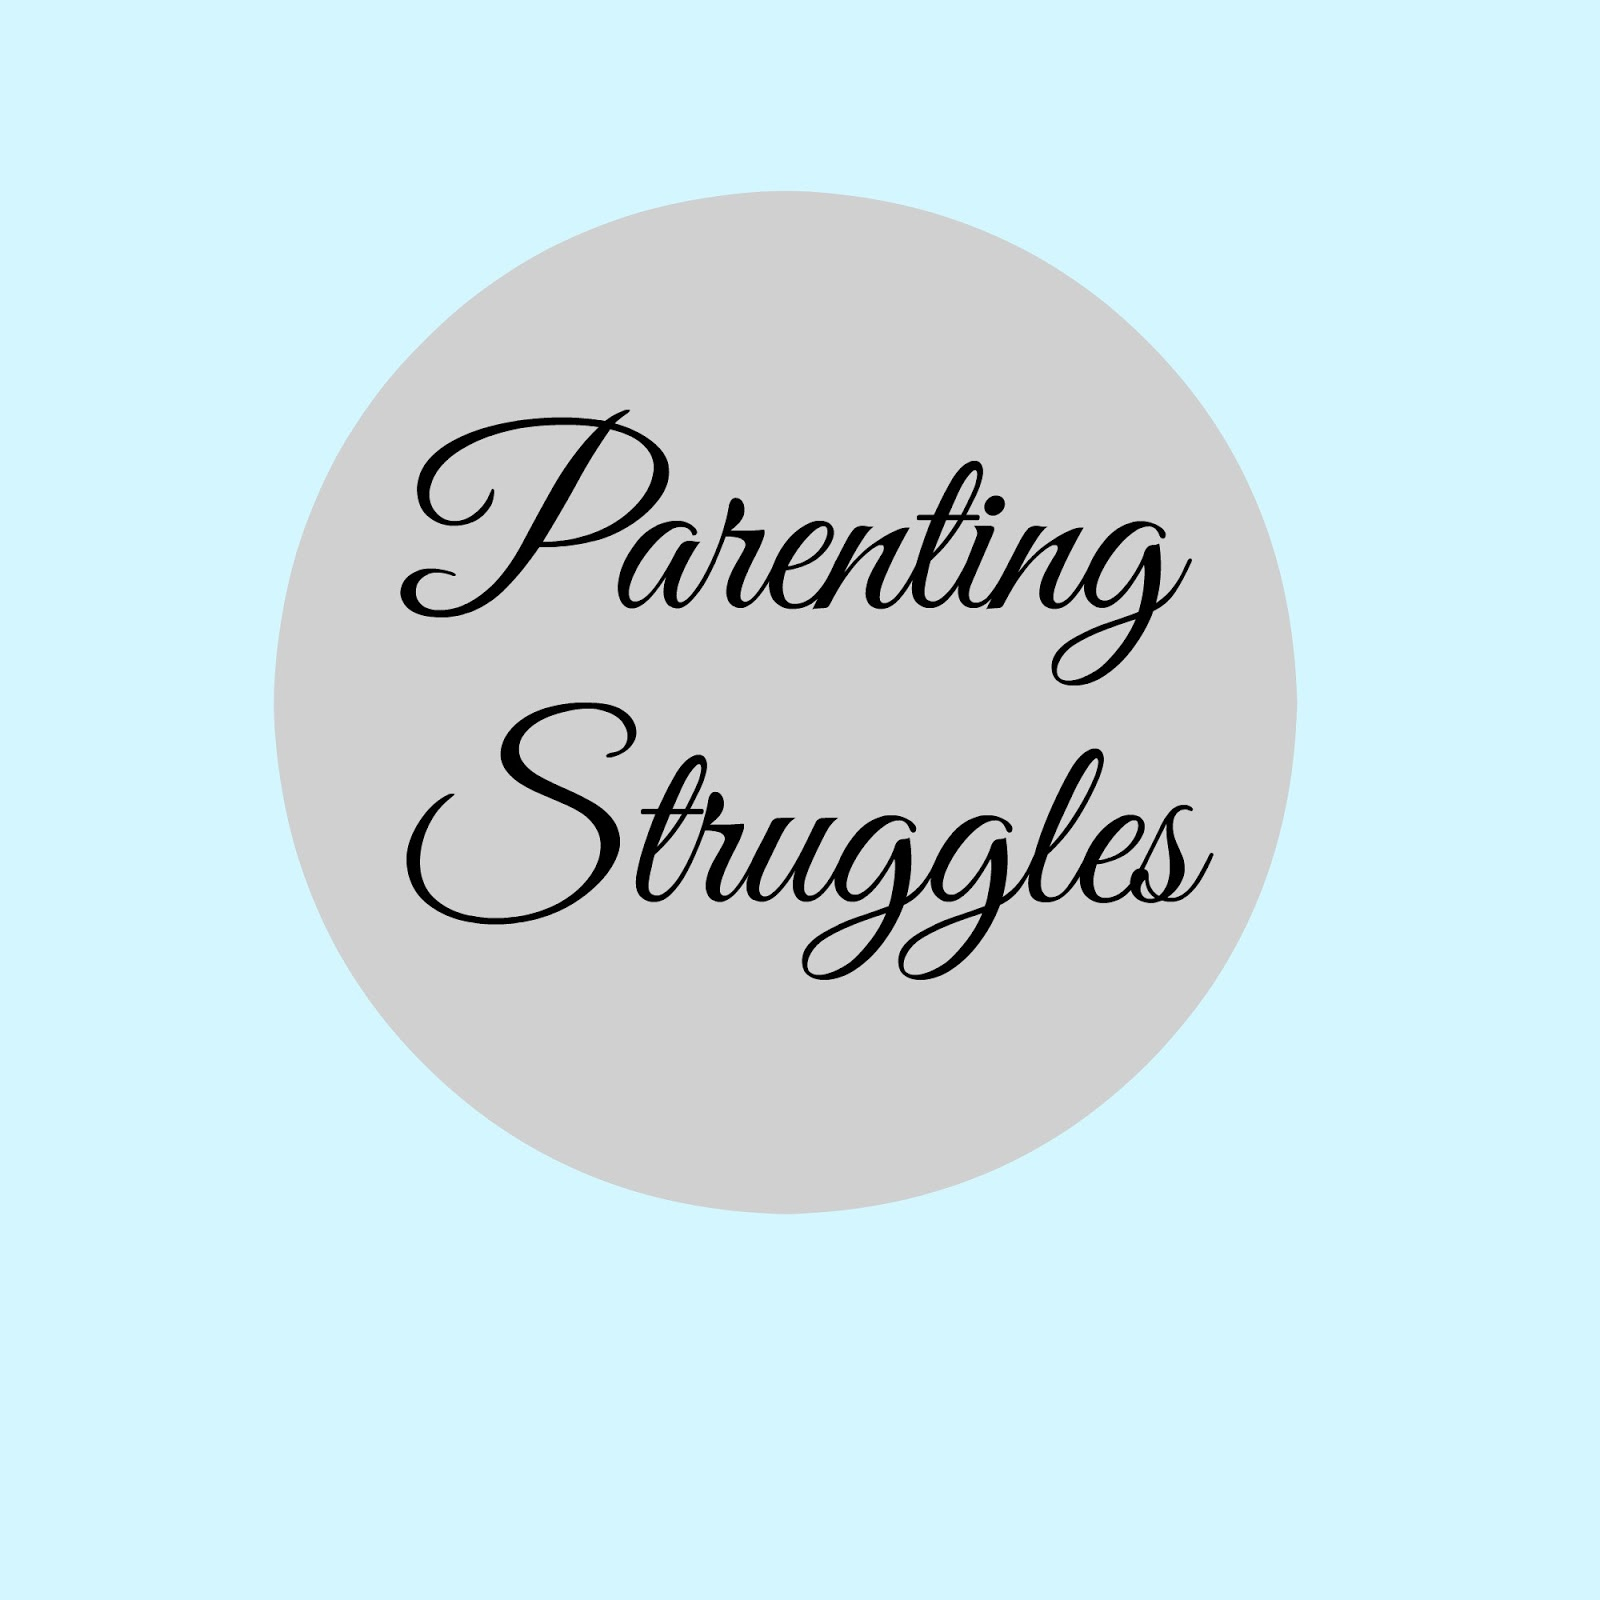 struggles of parenting Find a caregiver who complements your parenting style when choosing a babysitter, accept that you won't find your clone instead.